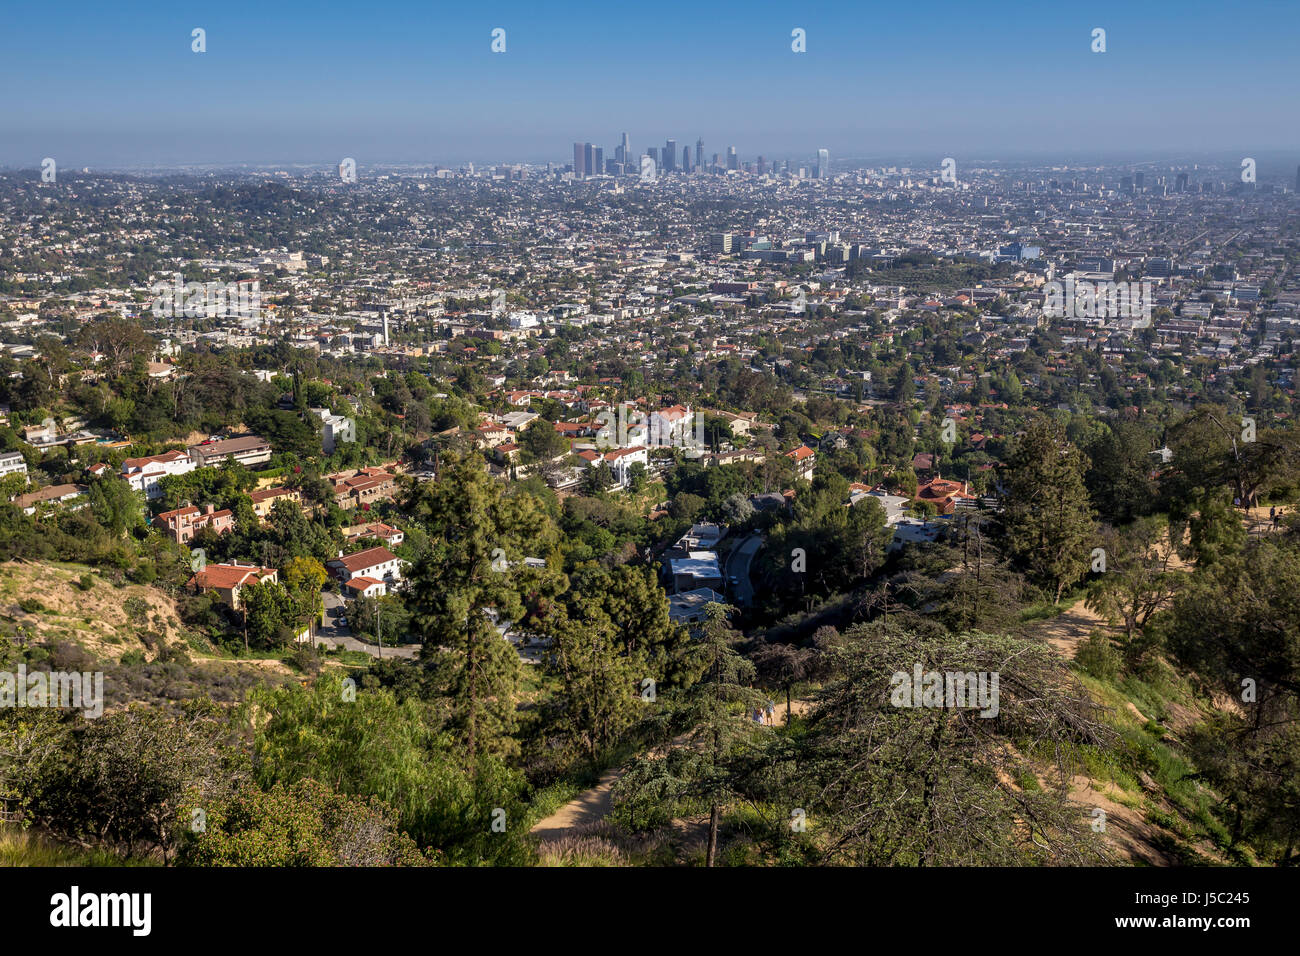 view of downtown LA from observation deck, Griffith Observatory, Griffith Park, Los Angeles, California - Stock Image